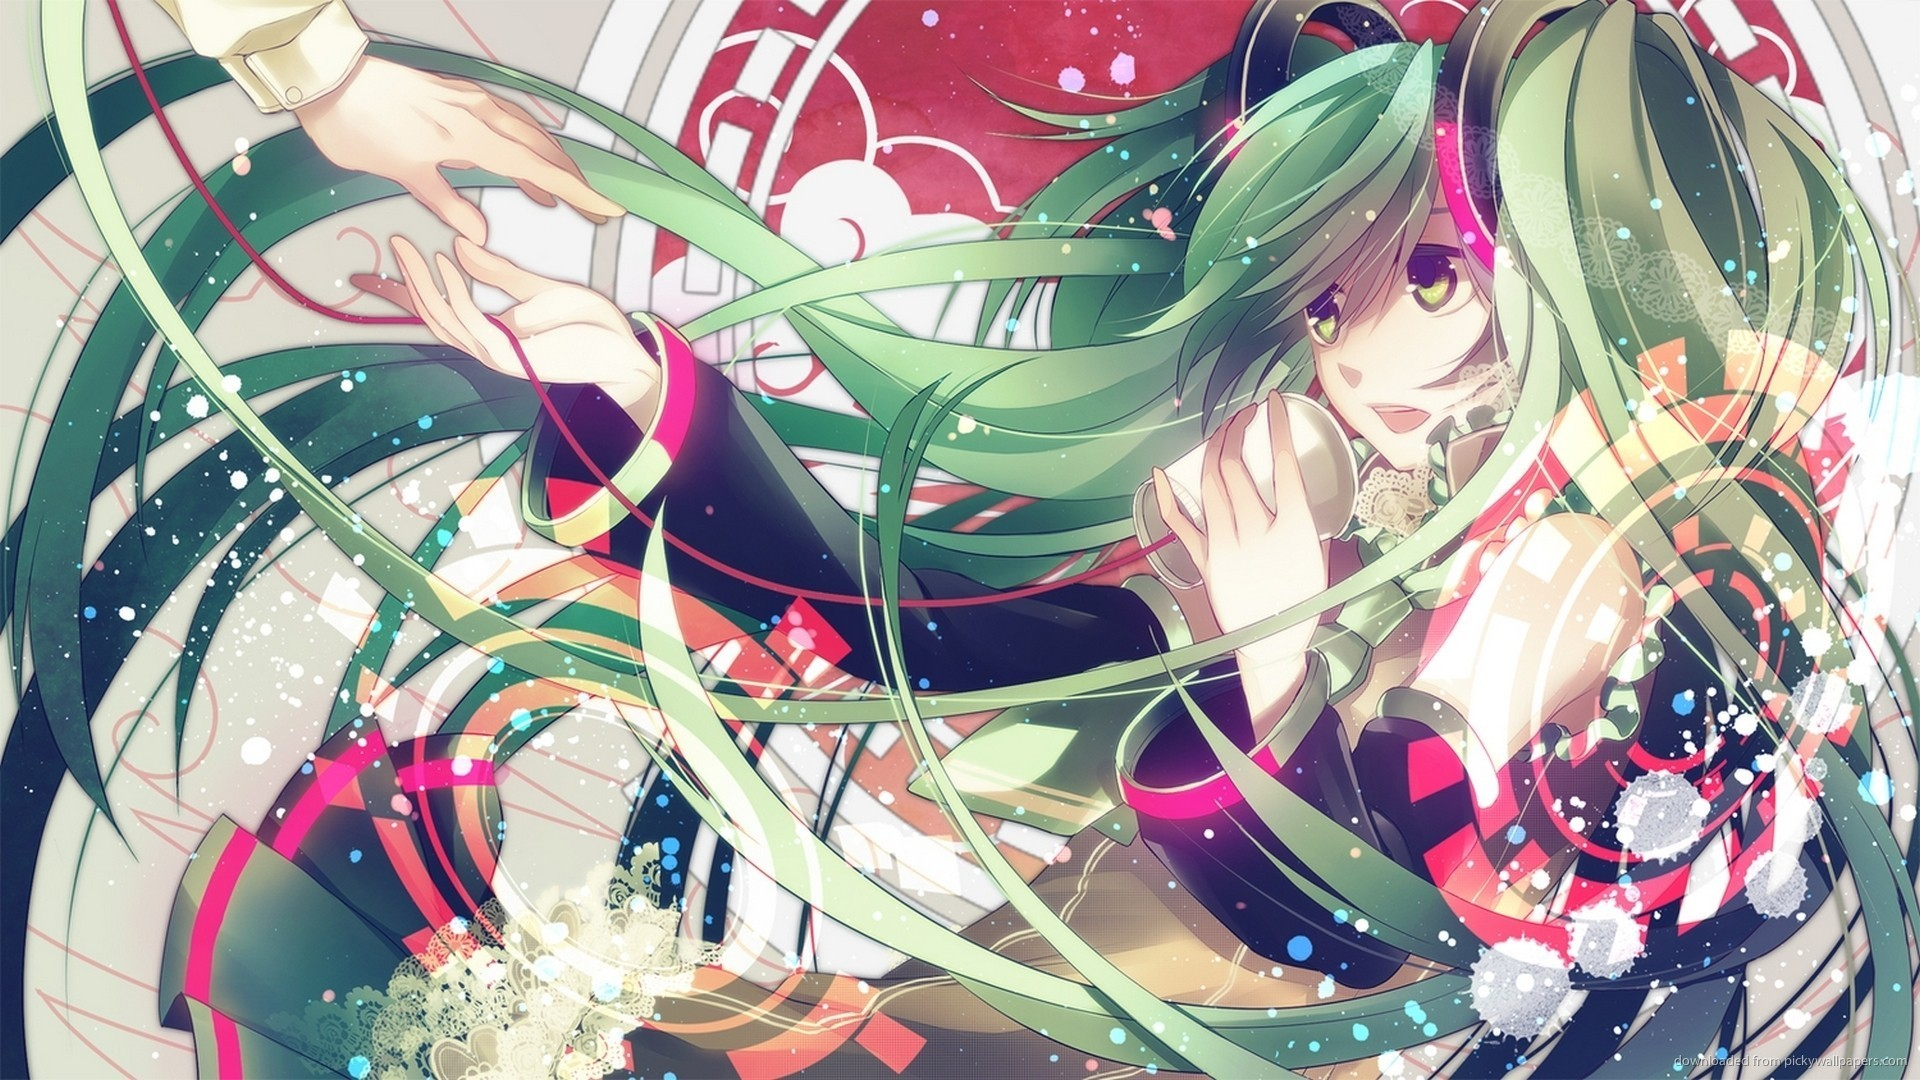 ... Vocaloid Hatsune Miko for 1920x1080